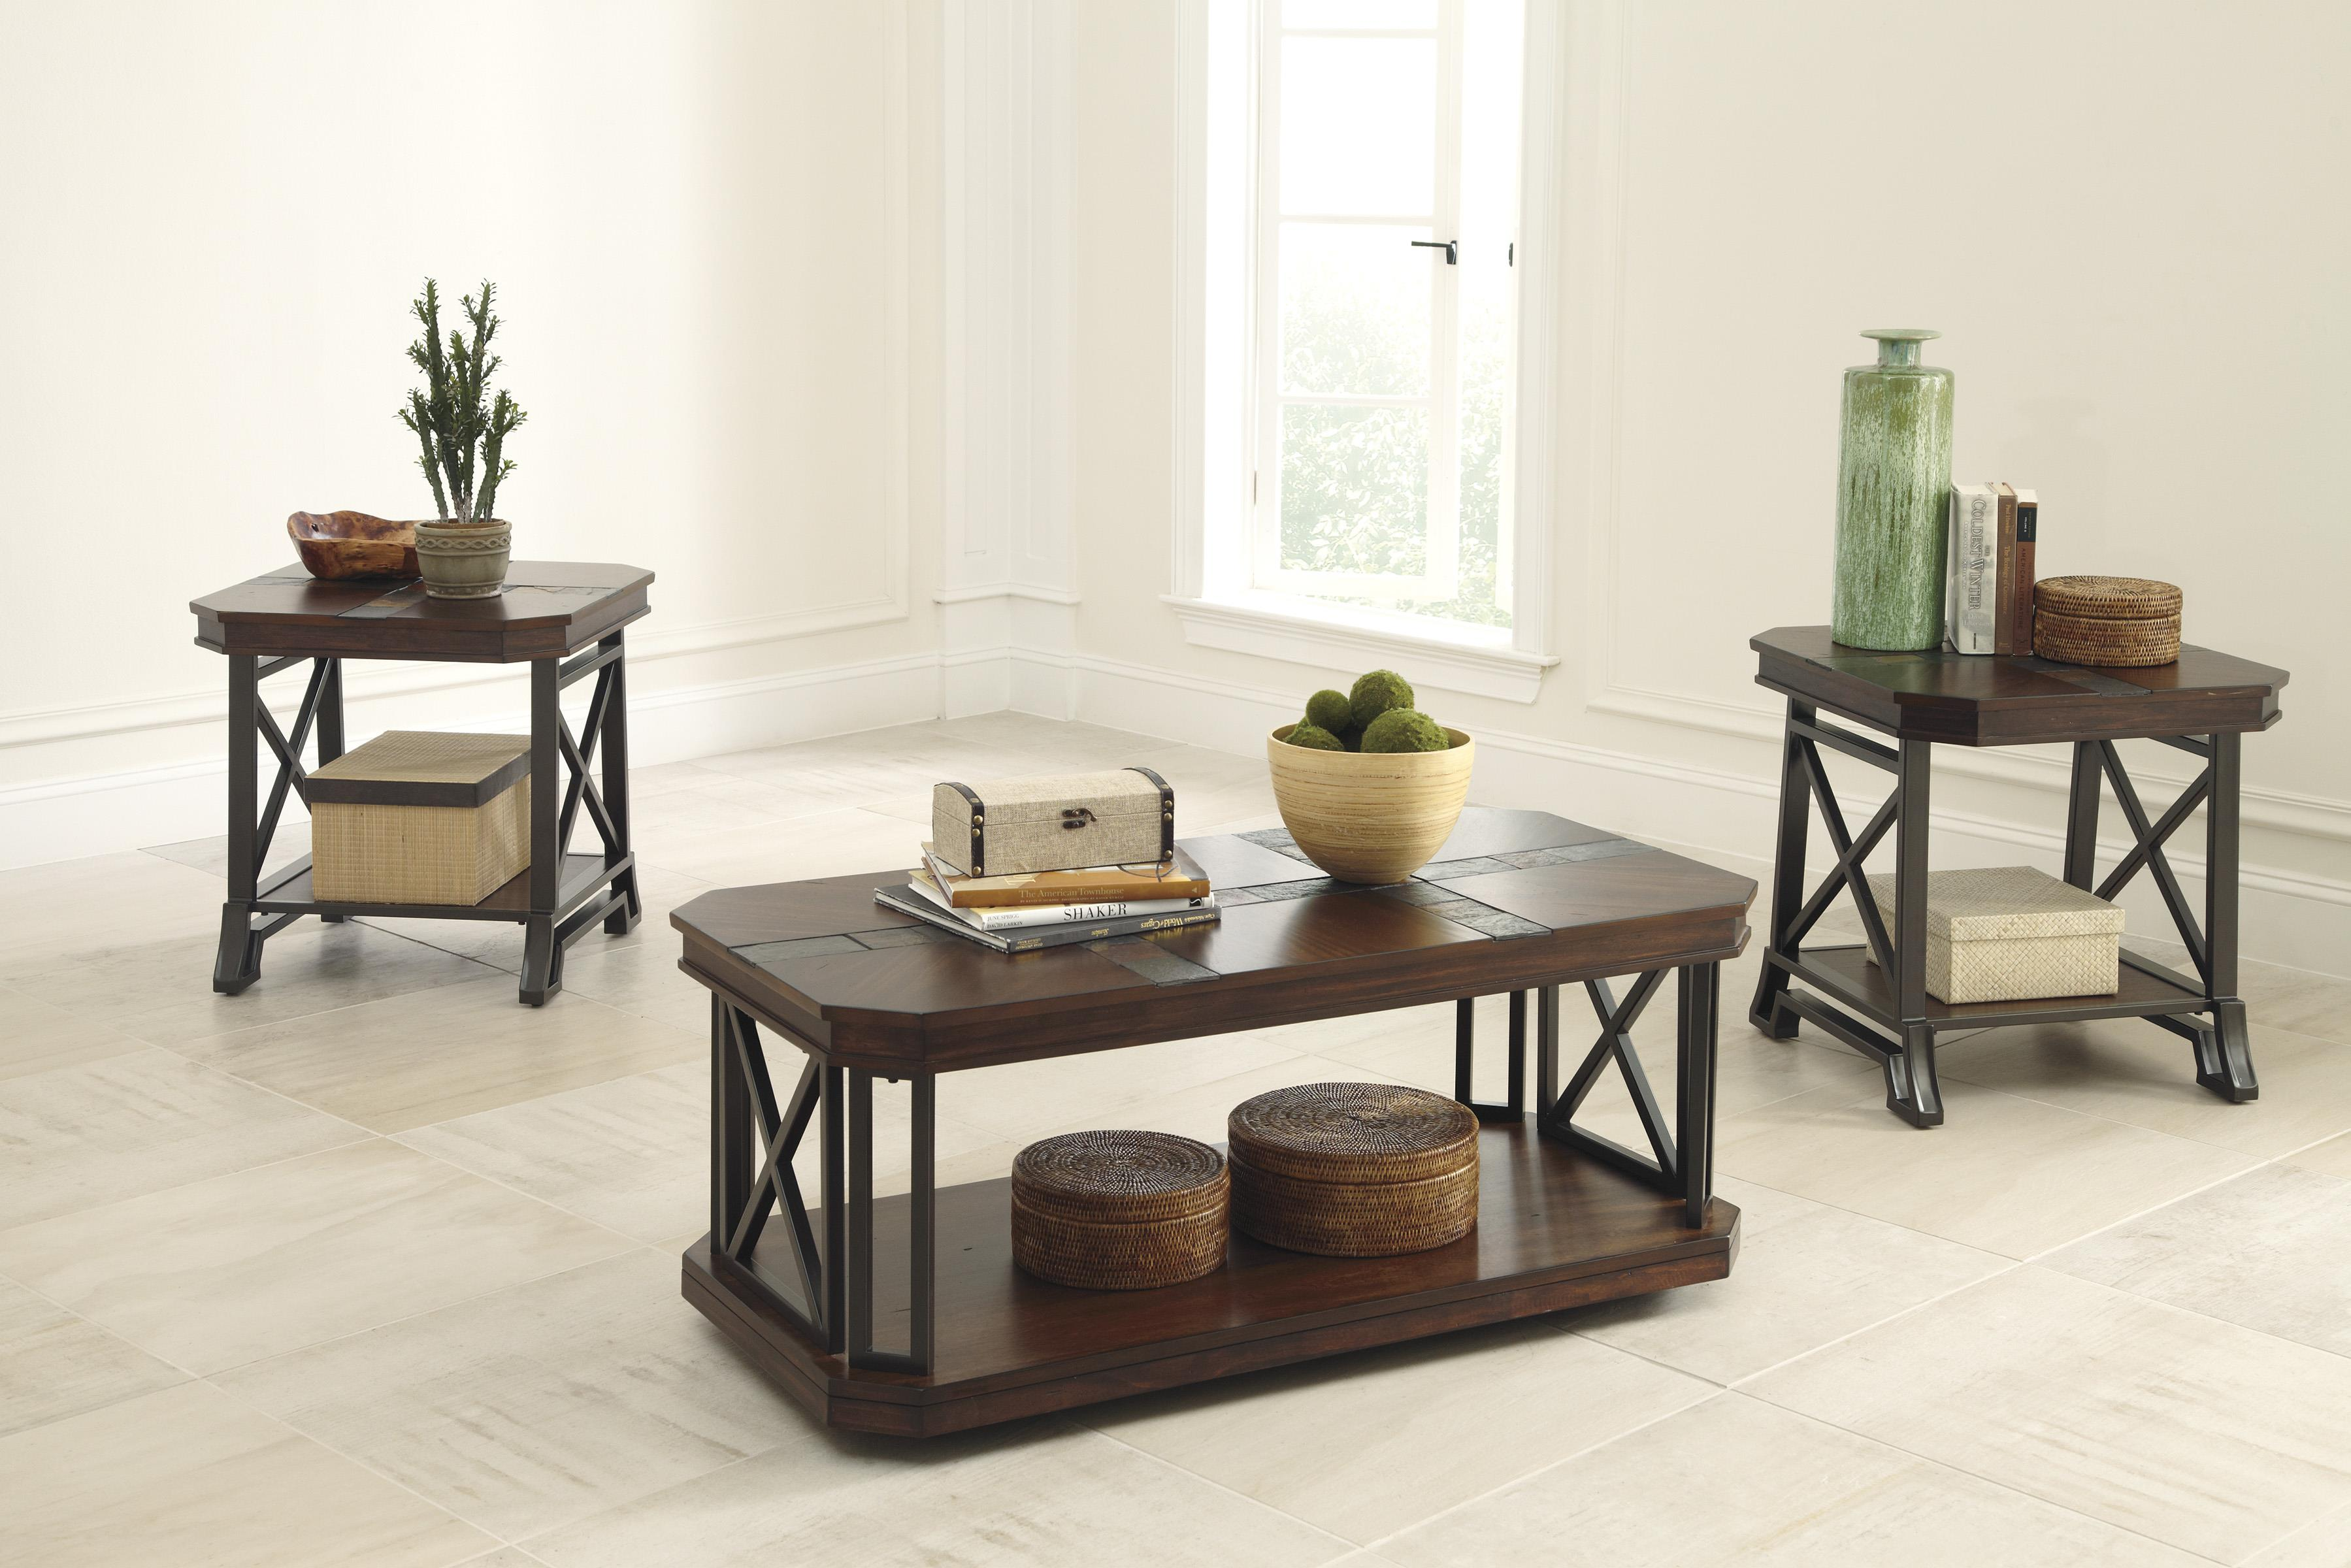 Vintage Casual Occasional Table Set with Slate Tile Inlay by